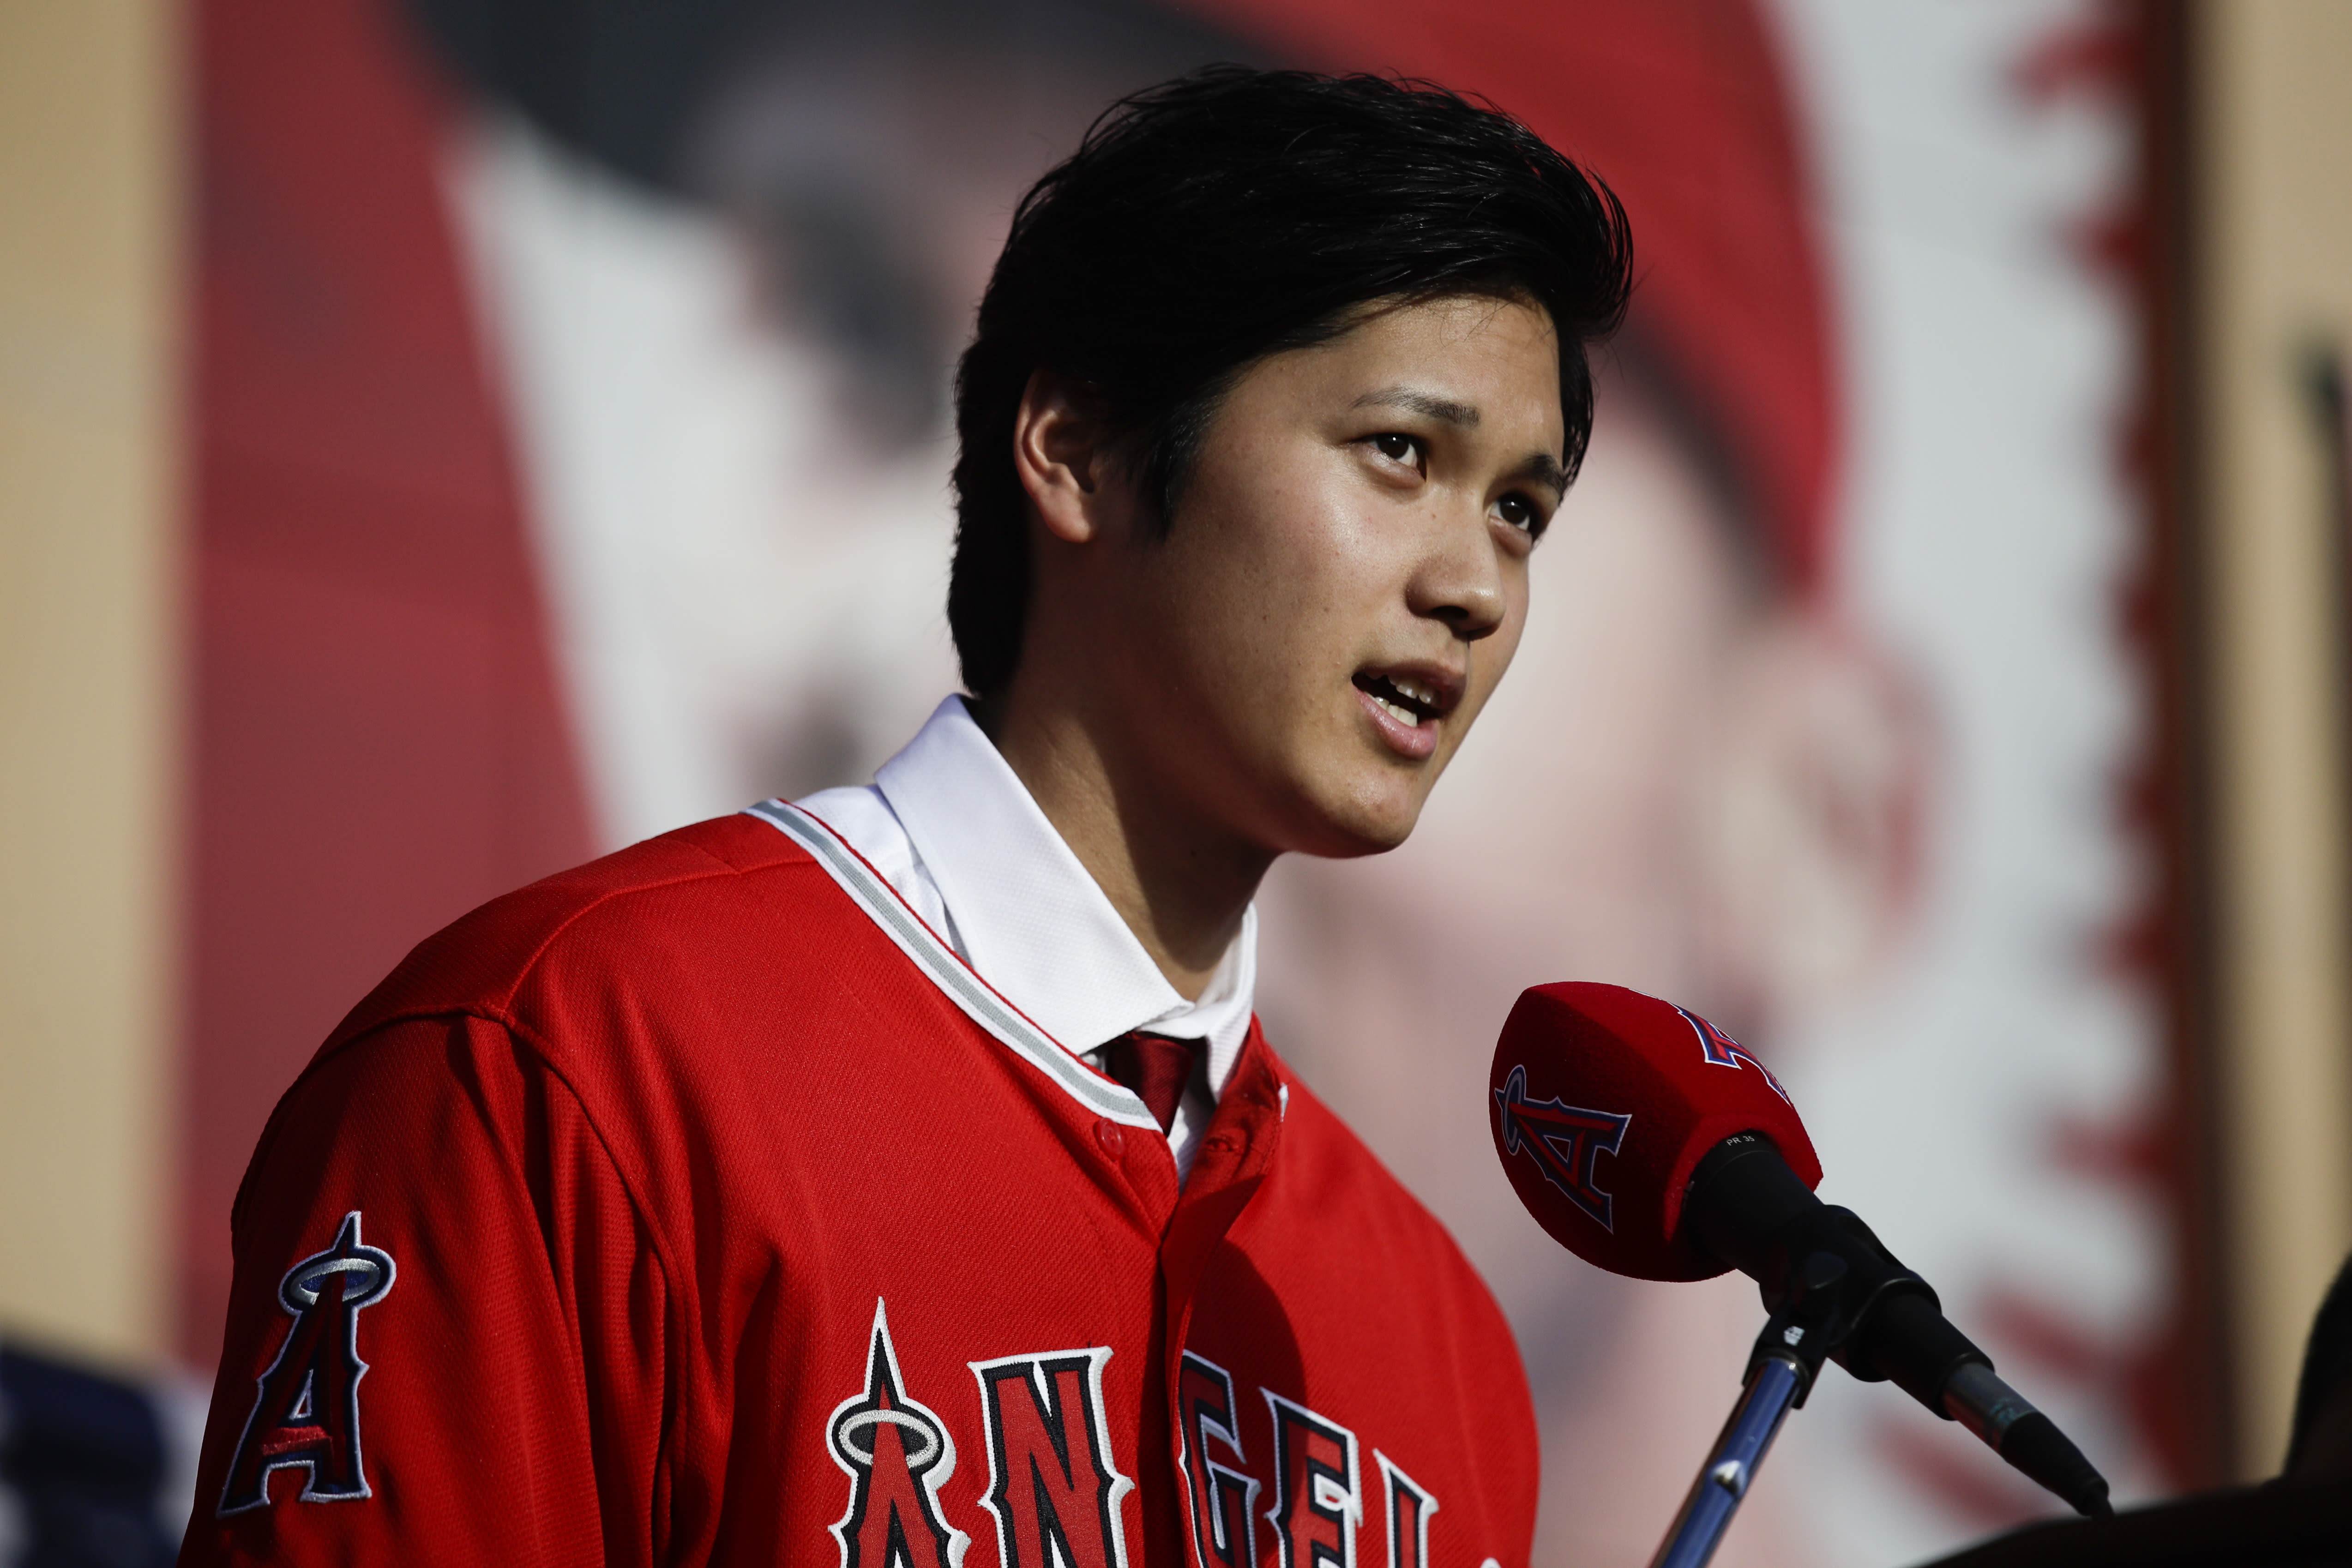 Angels two-way star Shohei Ohtani is already breaking baseball card records